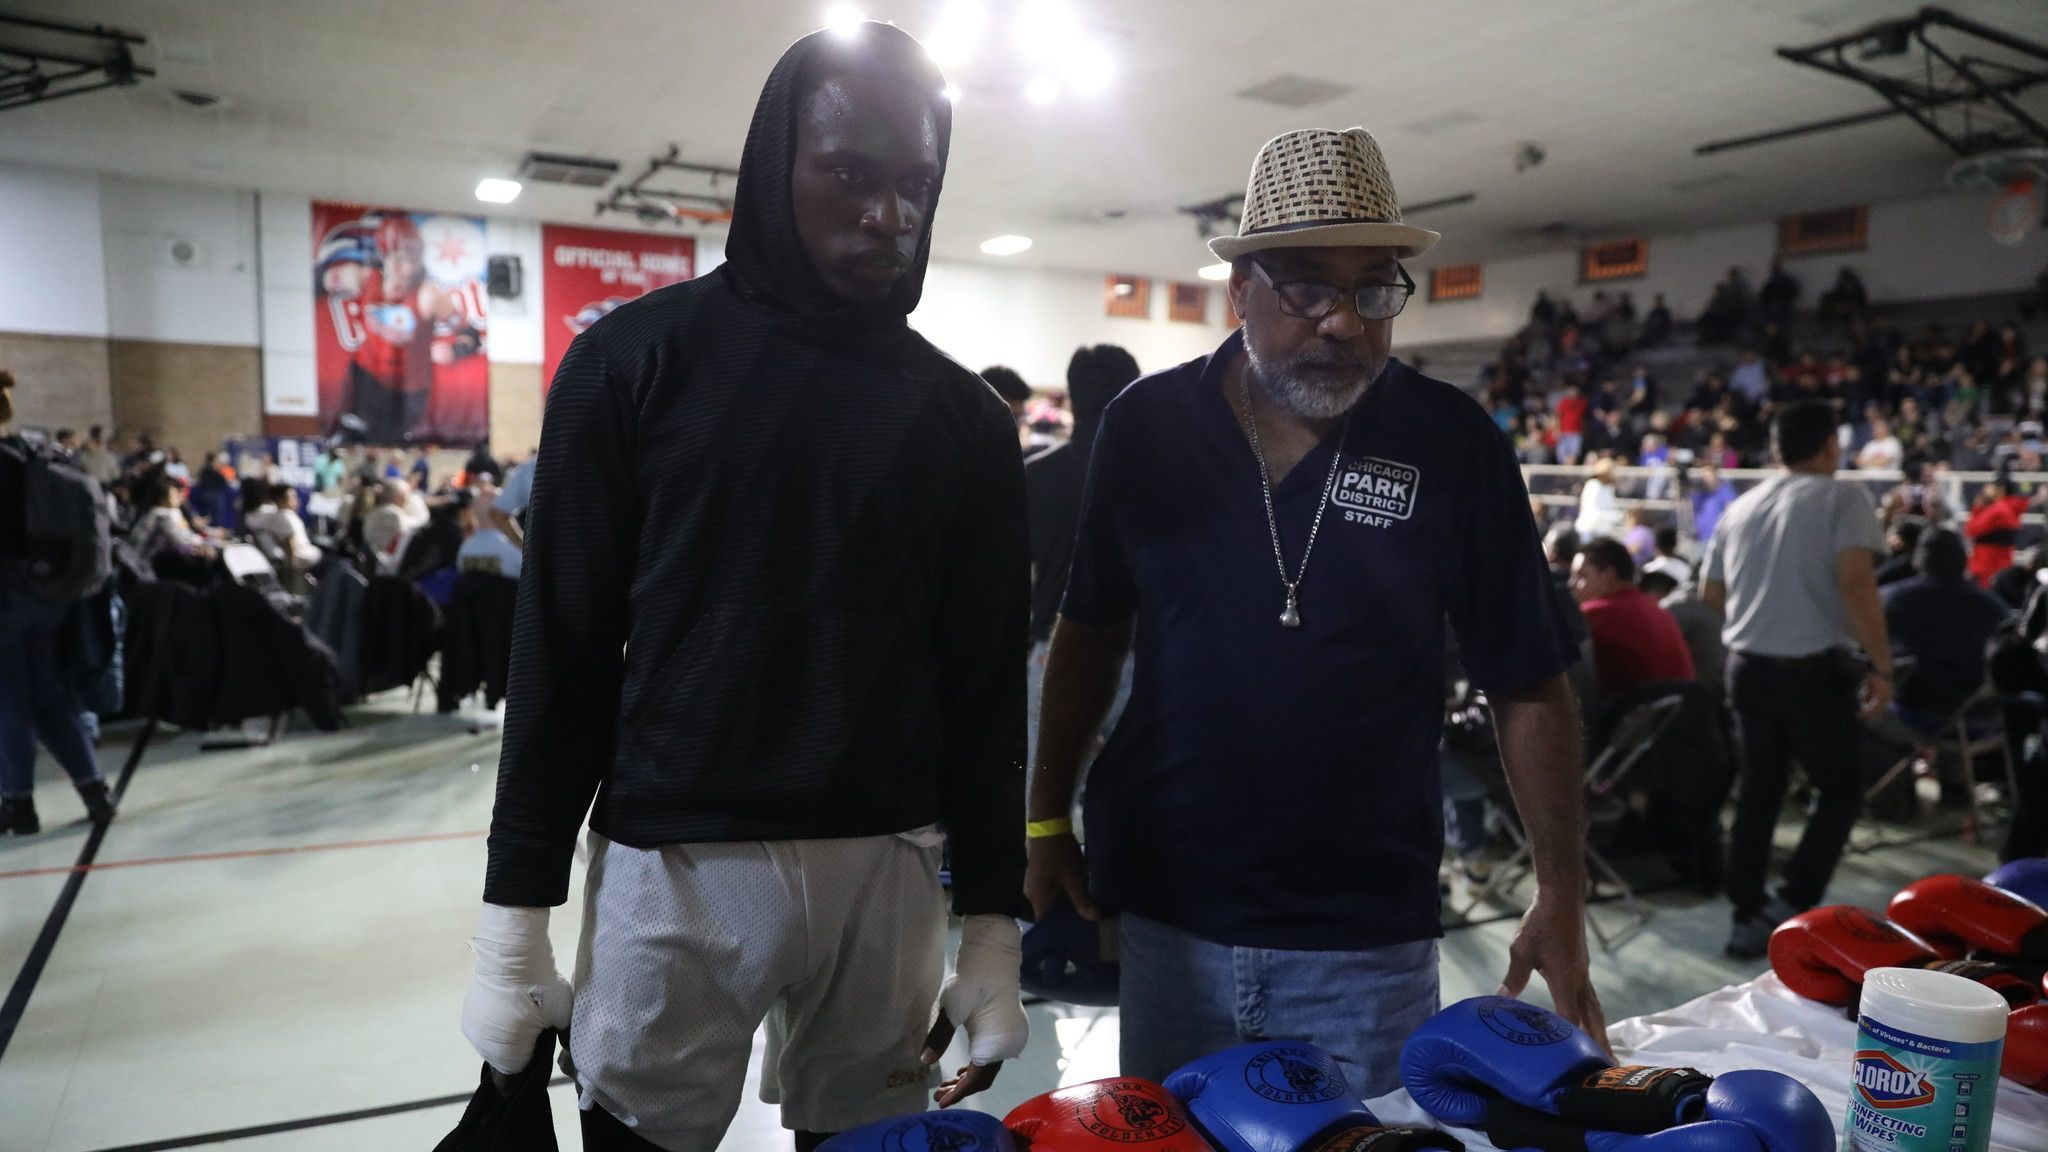 Brother in Smollett case competes in Golden Glove semifinal